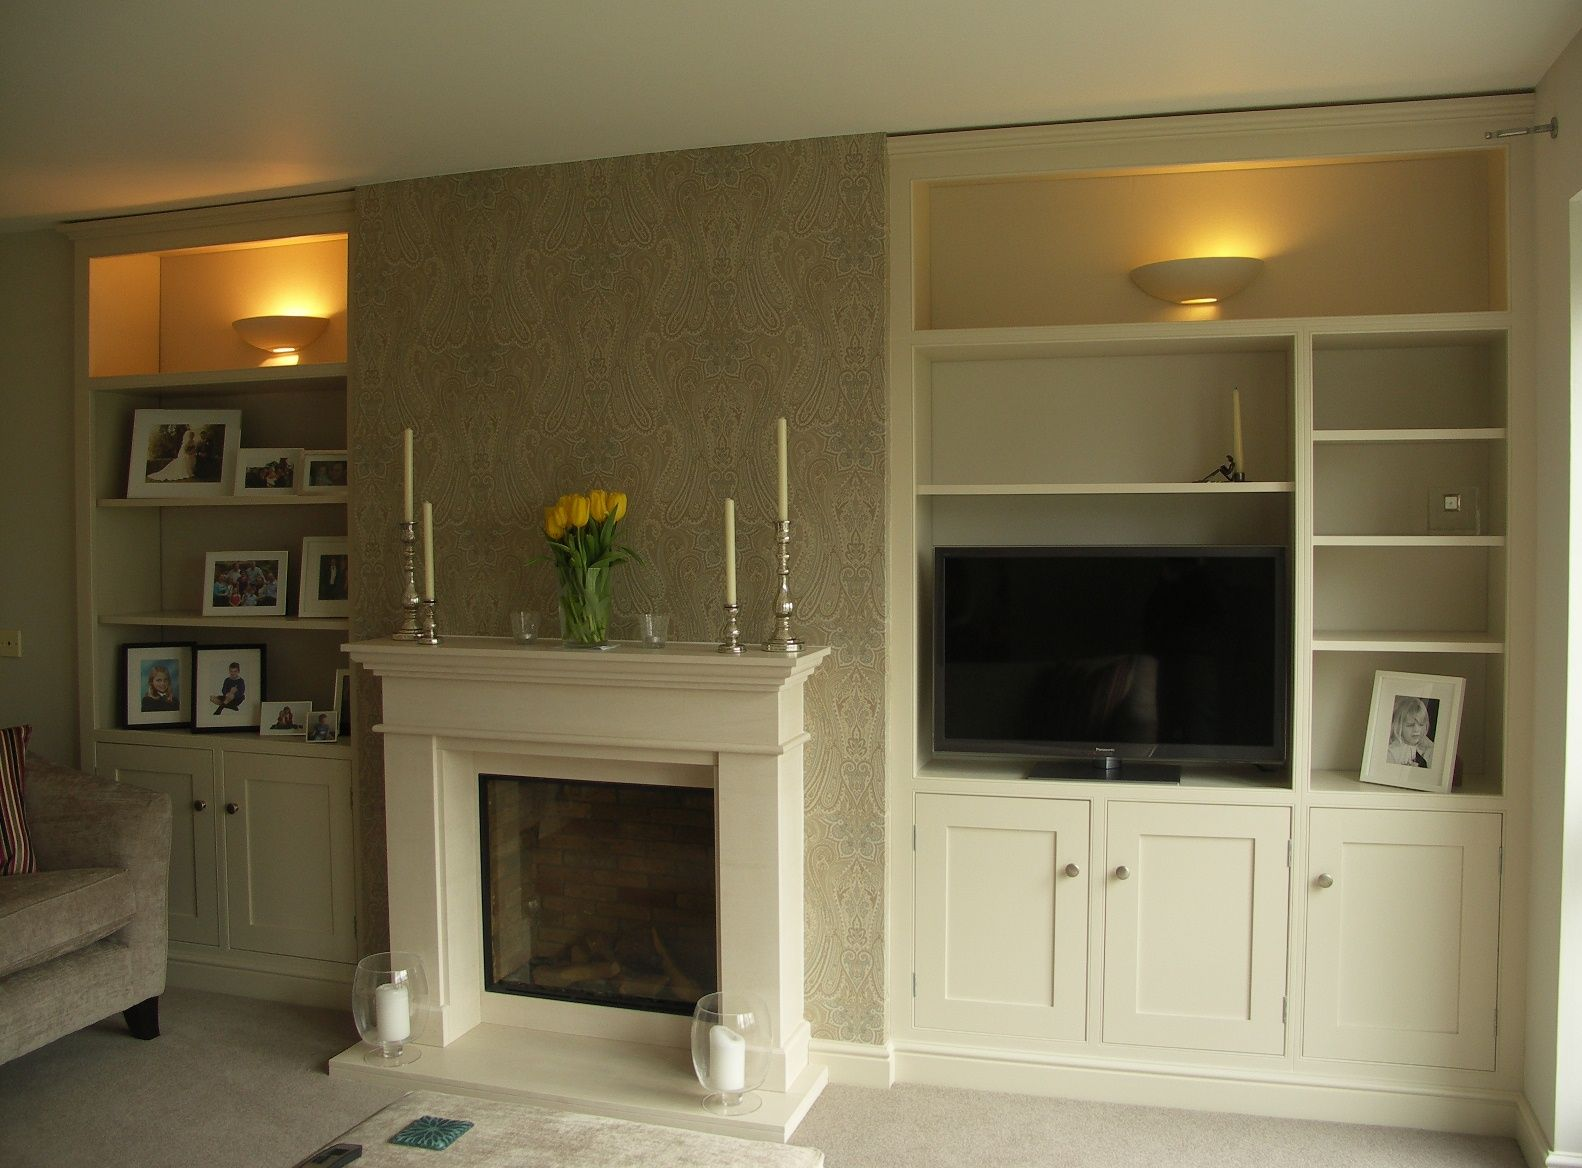 Make use of your chimney alcoves by fitting them out with for Alcove ideas living room